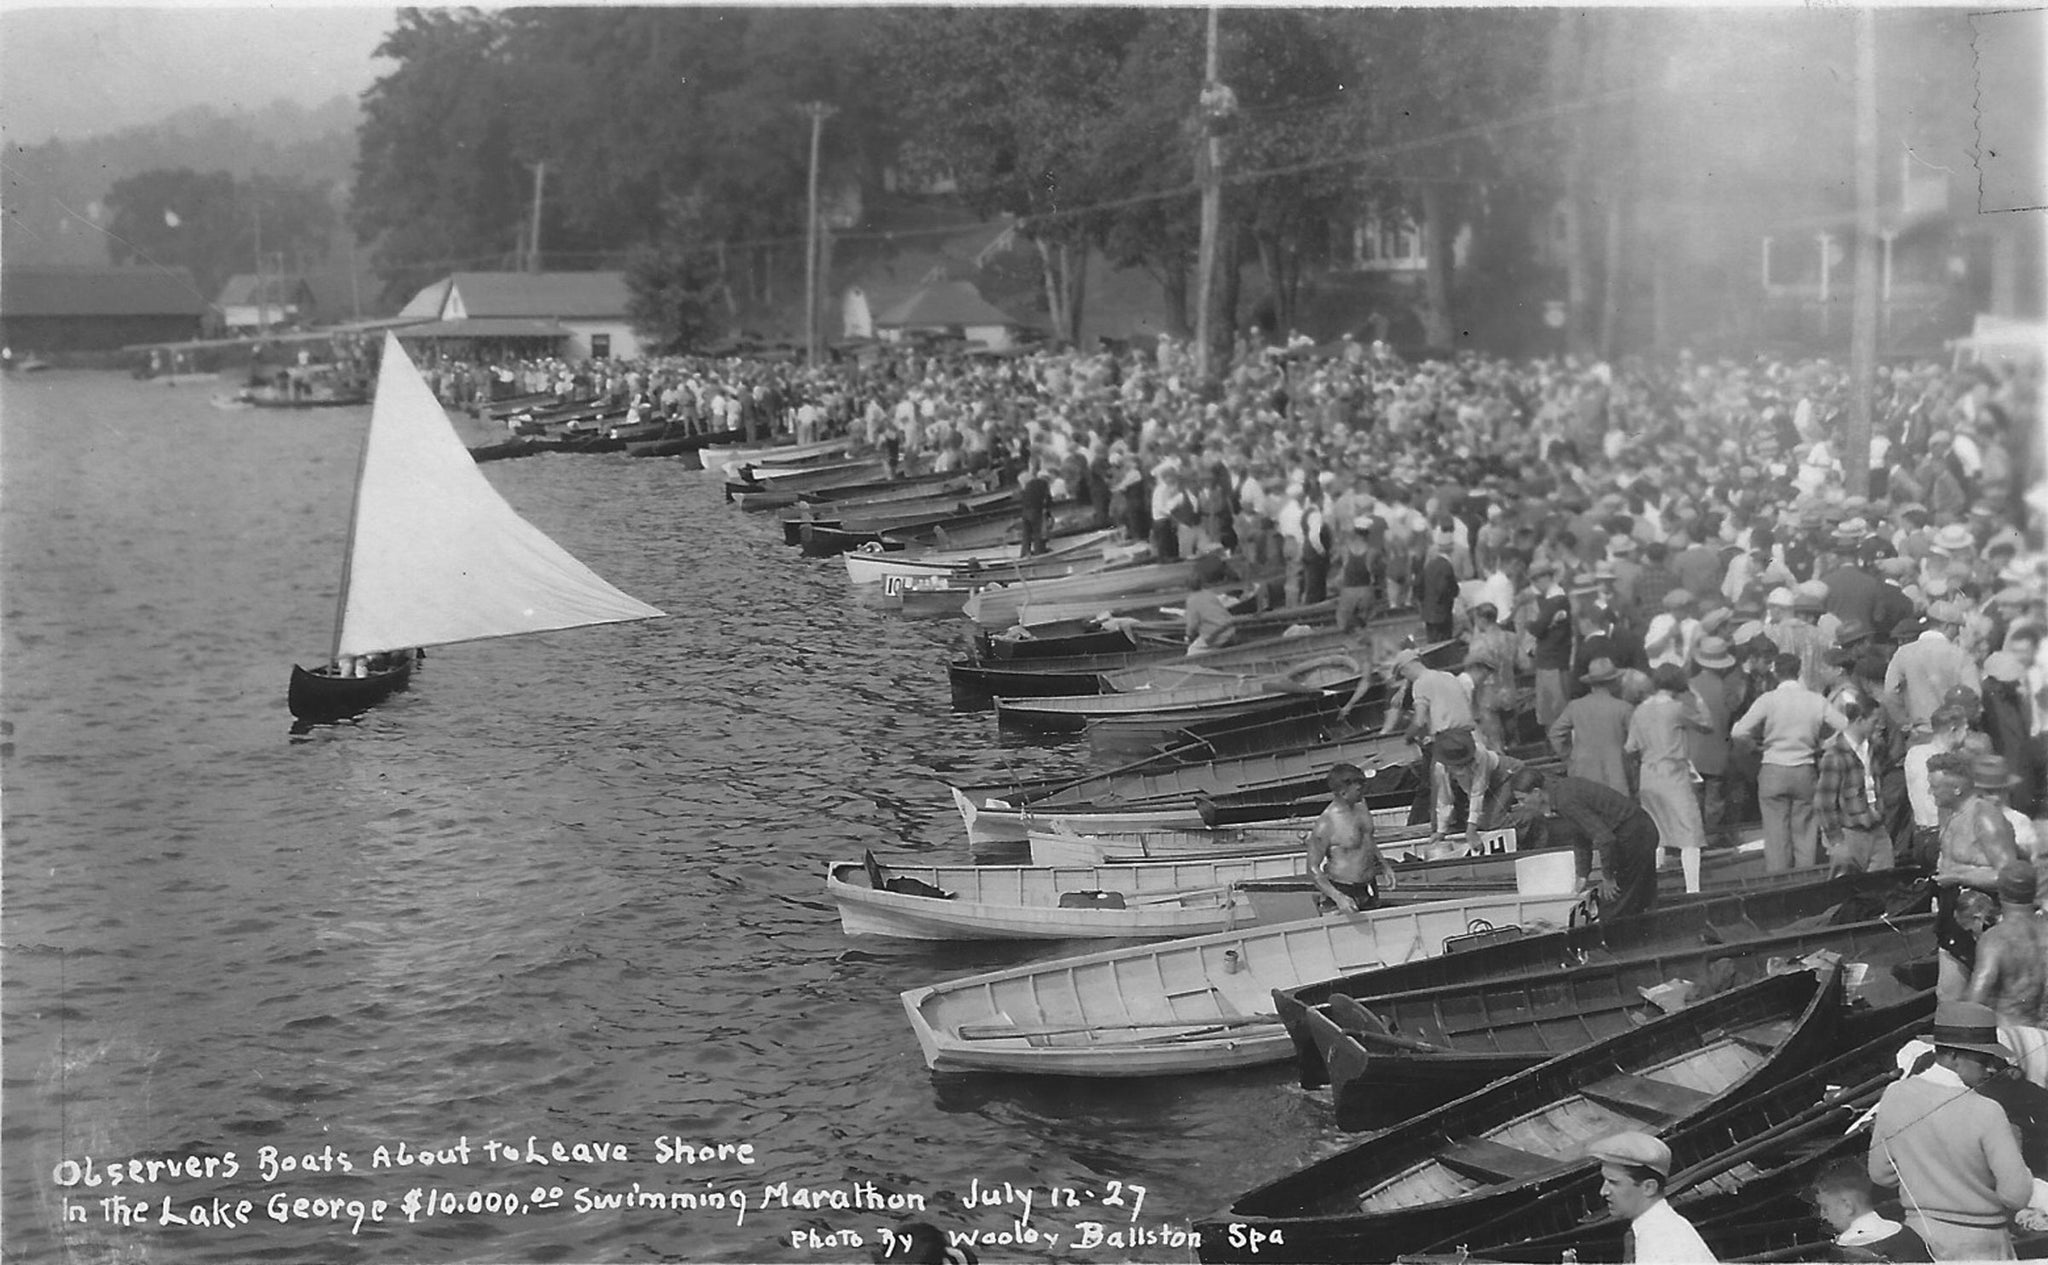 "The Lake George Swimming Marathon, held in July of 1927, drew 146 competitors from six countries and nearly every state in the U.S. Heavyweight boxing champion Jack Dempsey traveled to Hague to fire the starting pistol. Prizes included $10,000 in cash, valuable real estate as well as cups and medals. The 24-mile course set up for the marathon ran from the Trout House in Hague to the Fort William Henry Hotel. Eighteen and one half hours after the start in Hague, New York City swimmer, Edward Keeting, crossed the finish line in Lake George Village. Former Hague Historian Clifton West, who was 18 at the time of the marathon, remembered that so many people had crowded onto the platform leading out to the pier, that it gave way when Dempsey stepped onto it, sending him and about a dozen of his fans into the ankle-deep water. Dempsey was unscathed, though his fashionable shoes were soaked through. Rule #12 stated: ""Any class of bathing suit… can be used. Suits can be abolished entirely if swimmer chooses to use a covering only of grease."" Warren County Sanitary Inspector Harry Smith announced before the race that the grease could jeopardize the quality of Lake George's water. The swimmers, however, rallied at the Lake George Courthouse and were able to convince him that the grease was a natural substance (wool fat or lanolin) and would not harm the lake. -- Hague Historical Society"